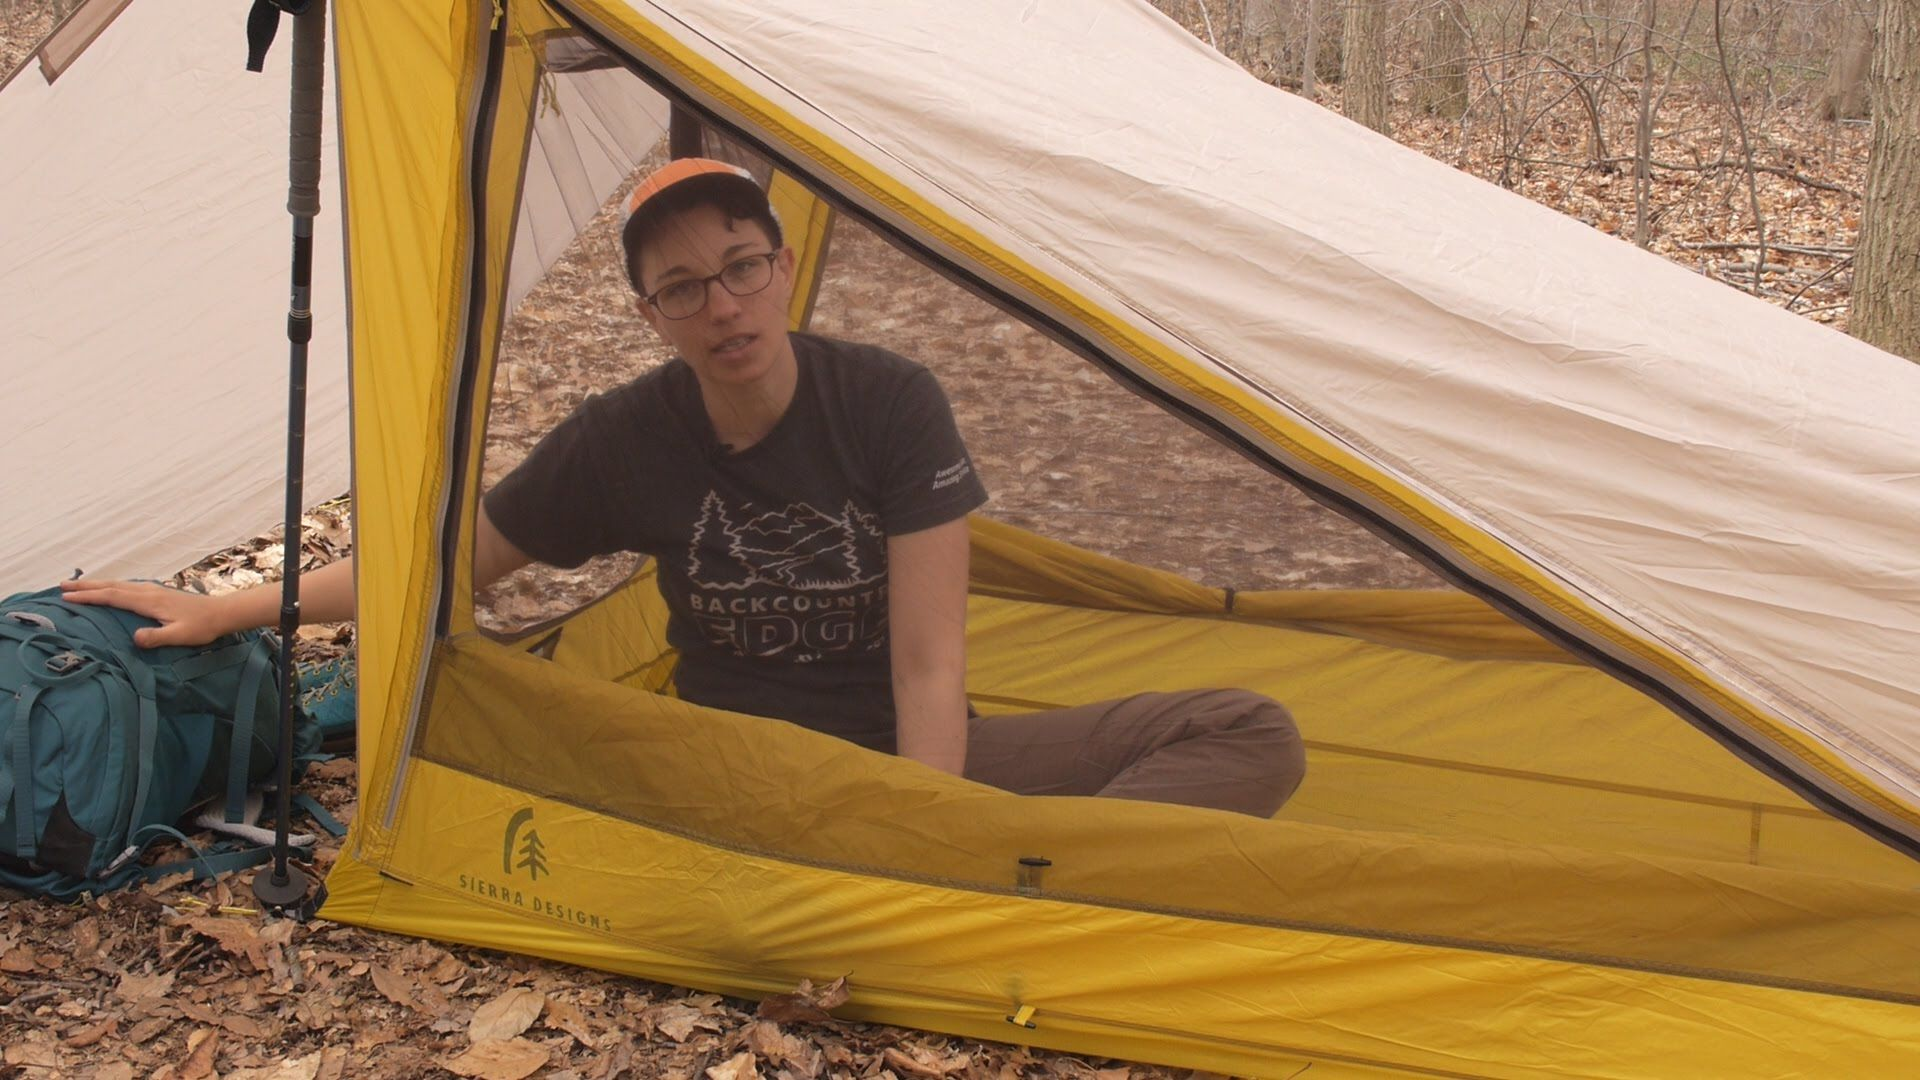 Backcountry Edge Gear Specialist video review of the Sierra Designs Tensegrity 1 FL 3-Season  sc 1 st  Pinterest : sierra designs ultralight tent - memphite.com